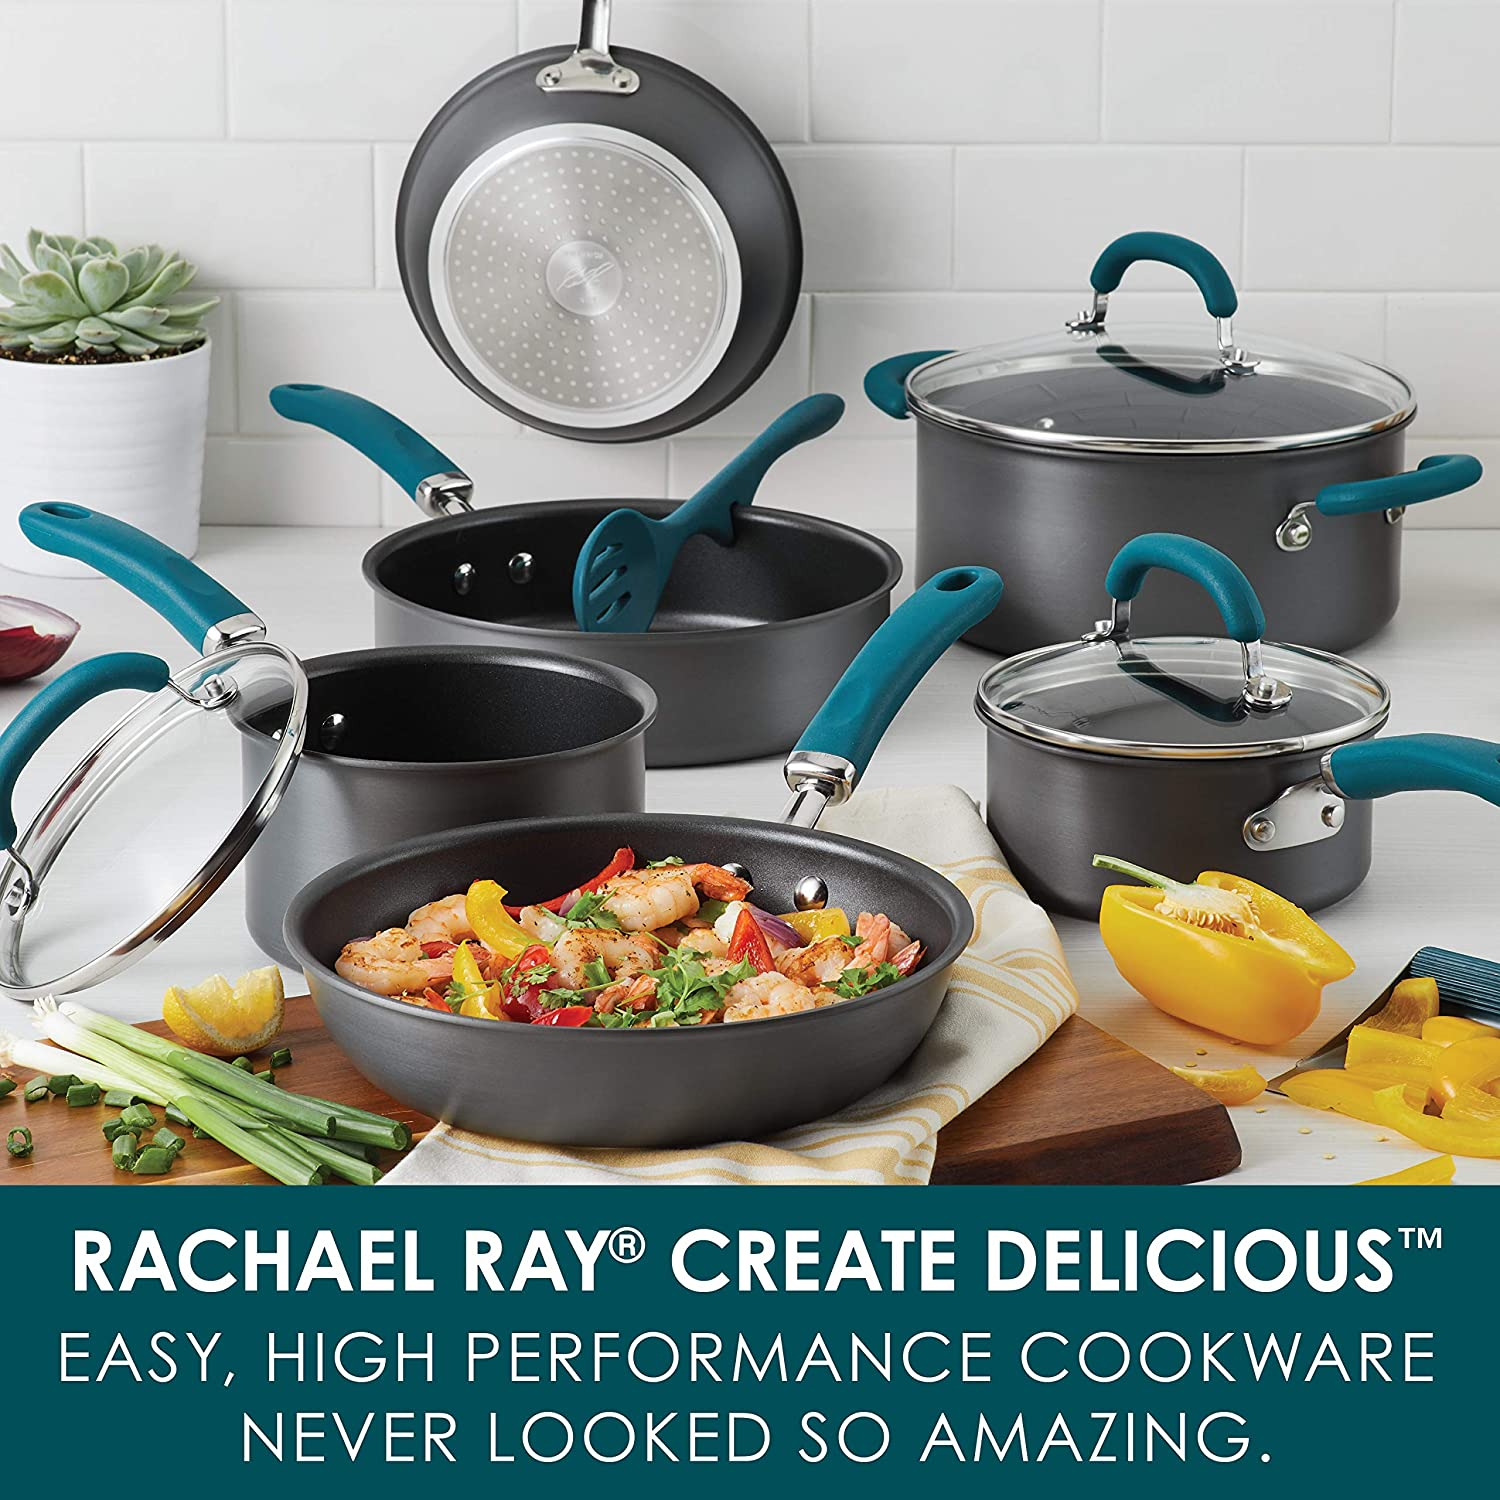 Rachael Ray Hard Anodized Nonstick Cookware Pots and Pans Set